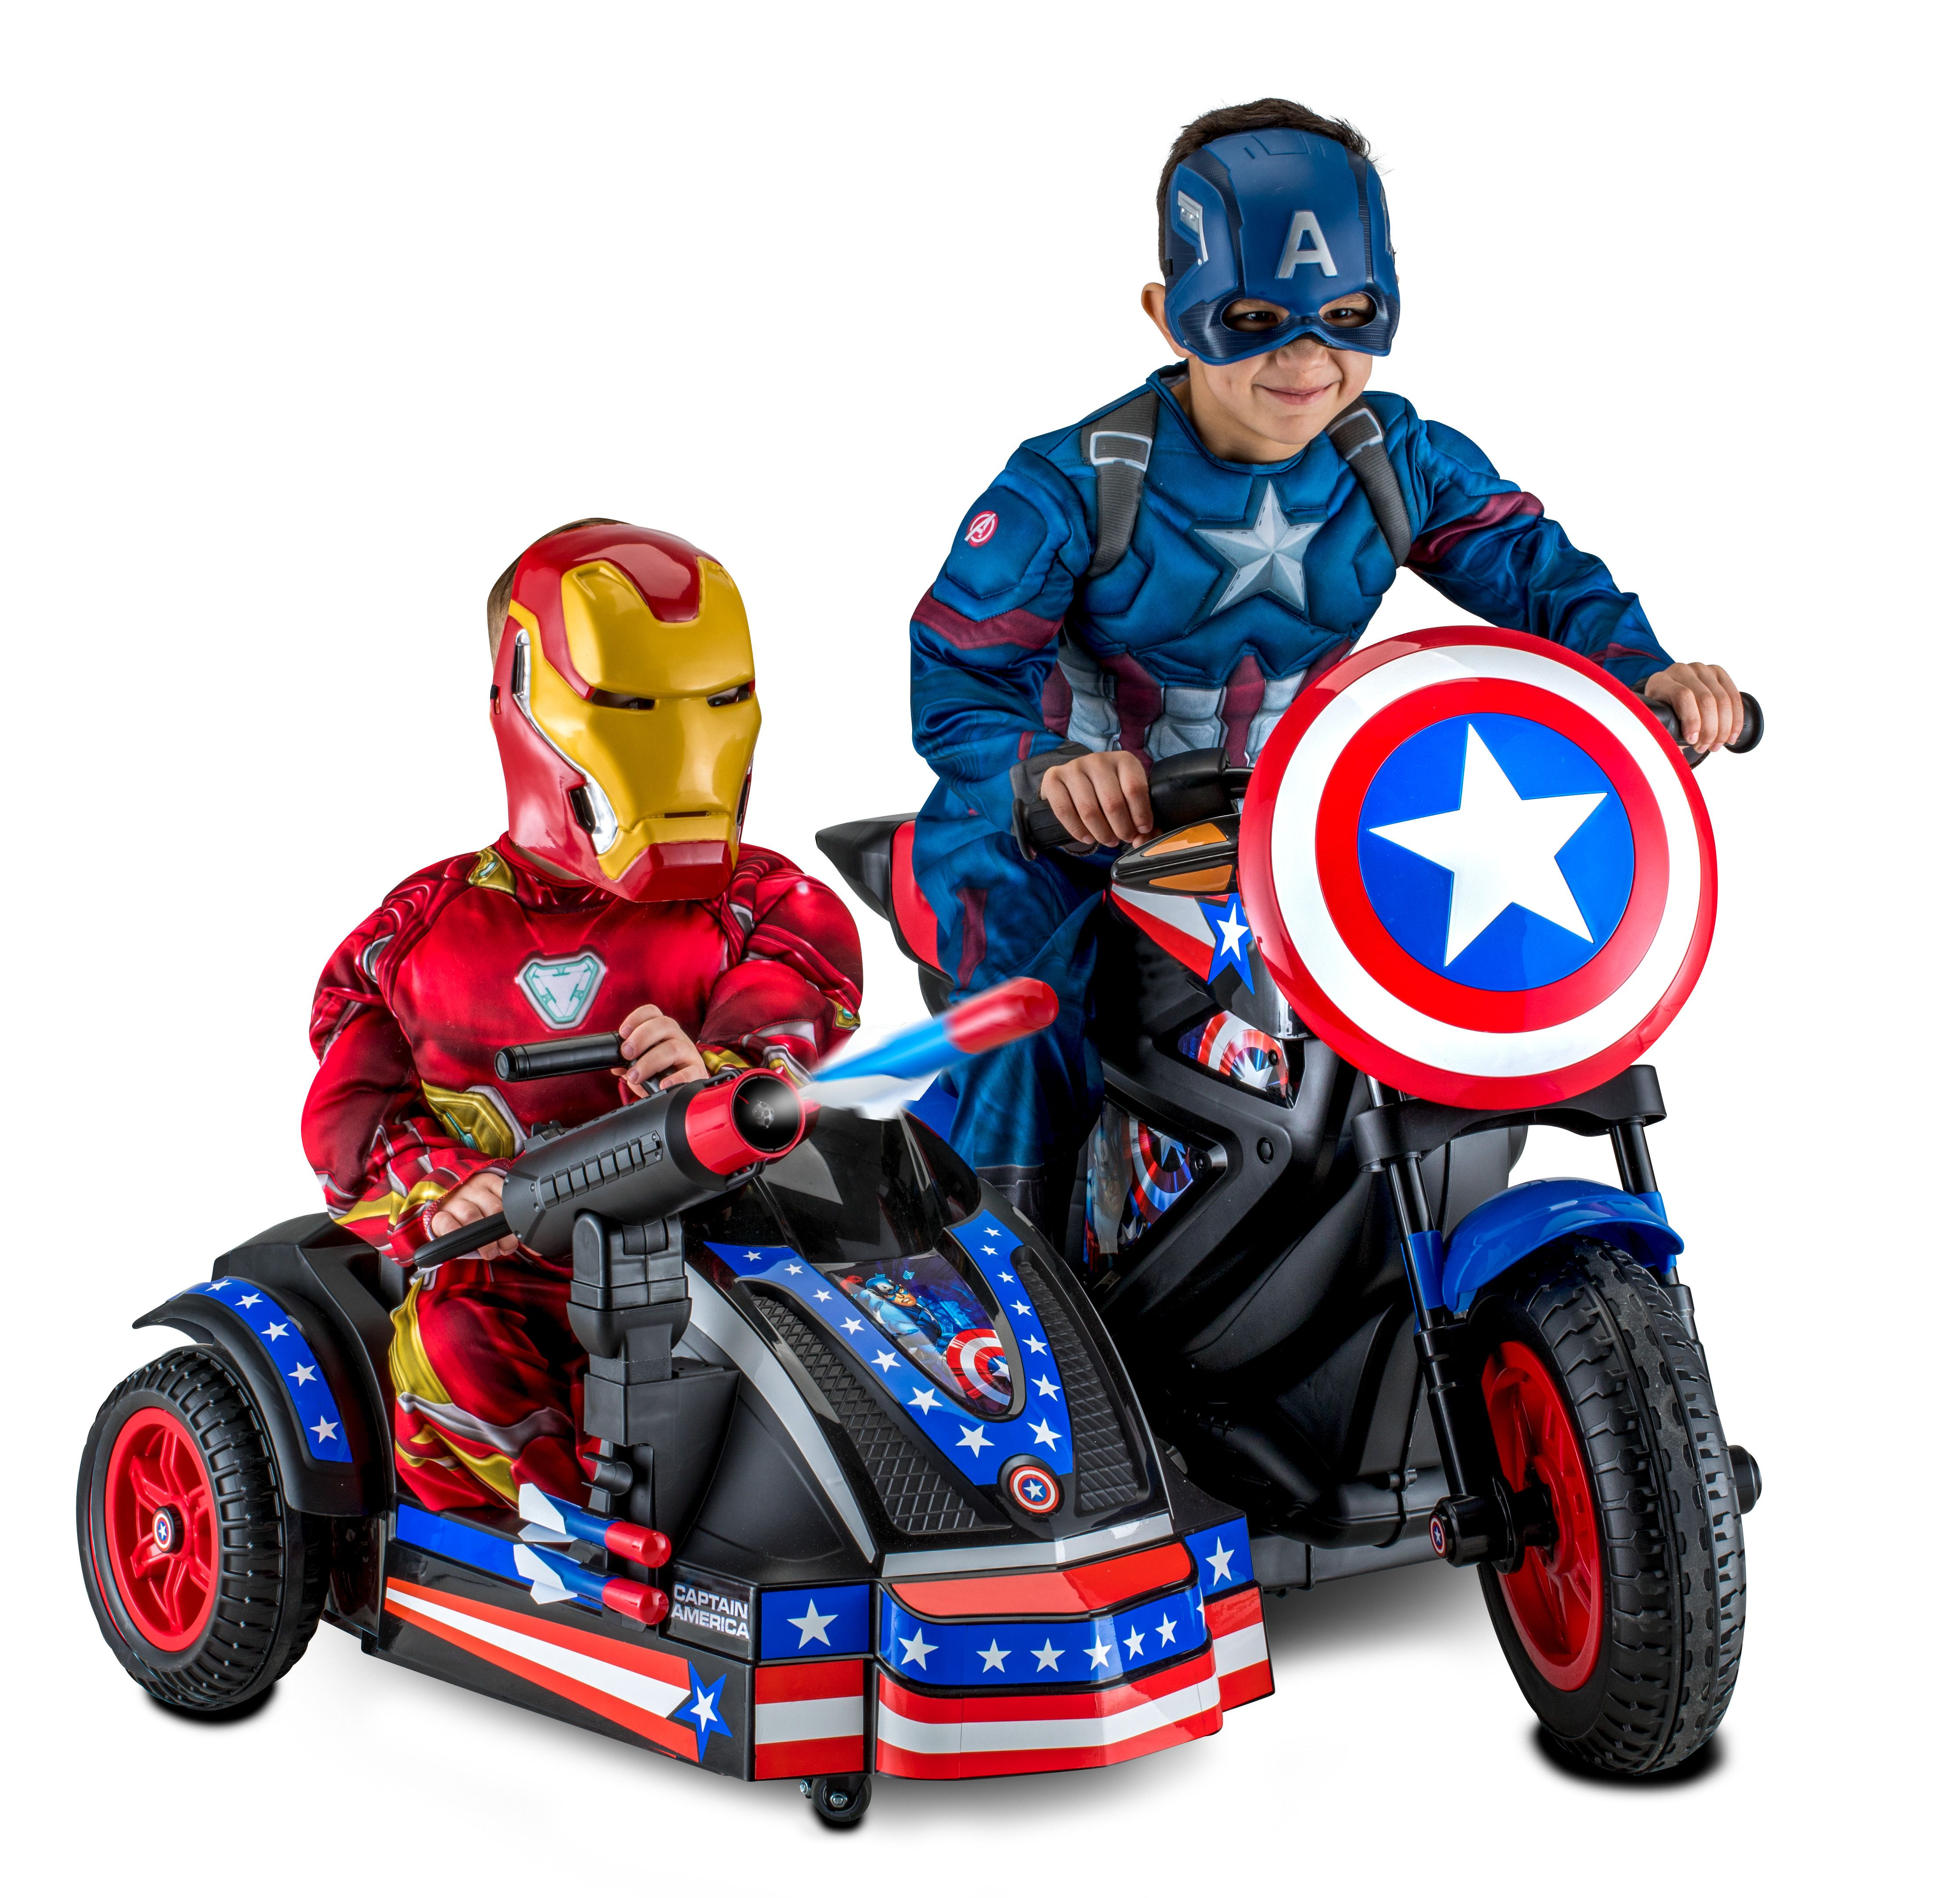 Captain America Motorcycle Ride On Only 179 Reg 249 For A Limited Time Only Walmart Has The Captain America Motorcycle Ride On Toys Captain America